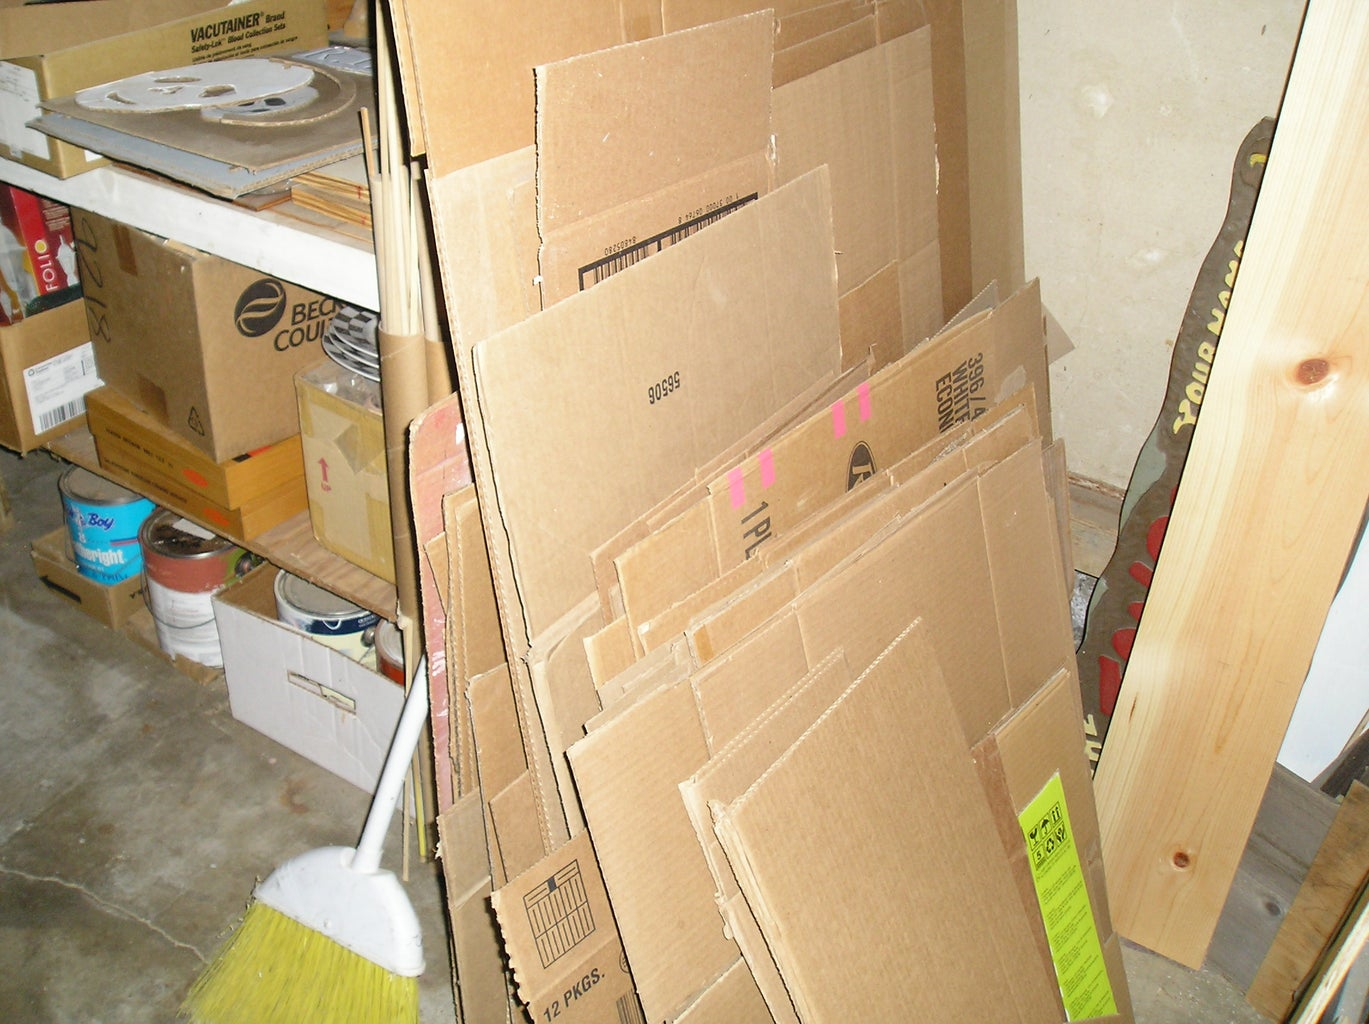 Gather the Cardboard and Other Materials